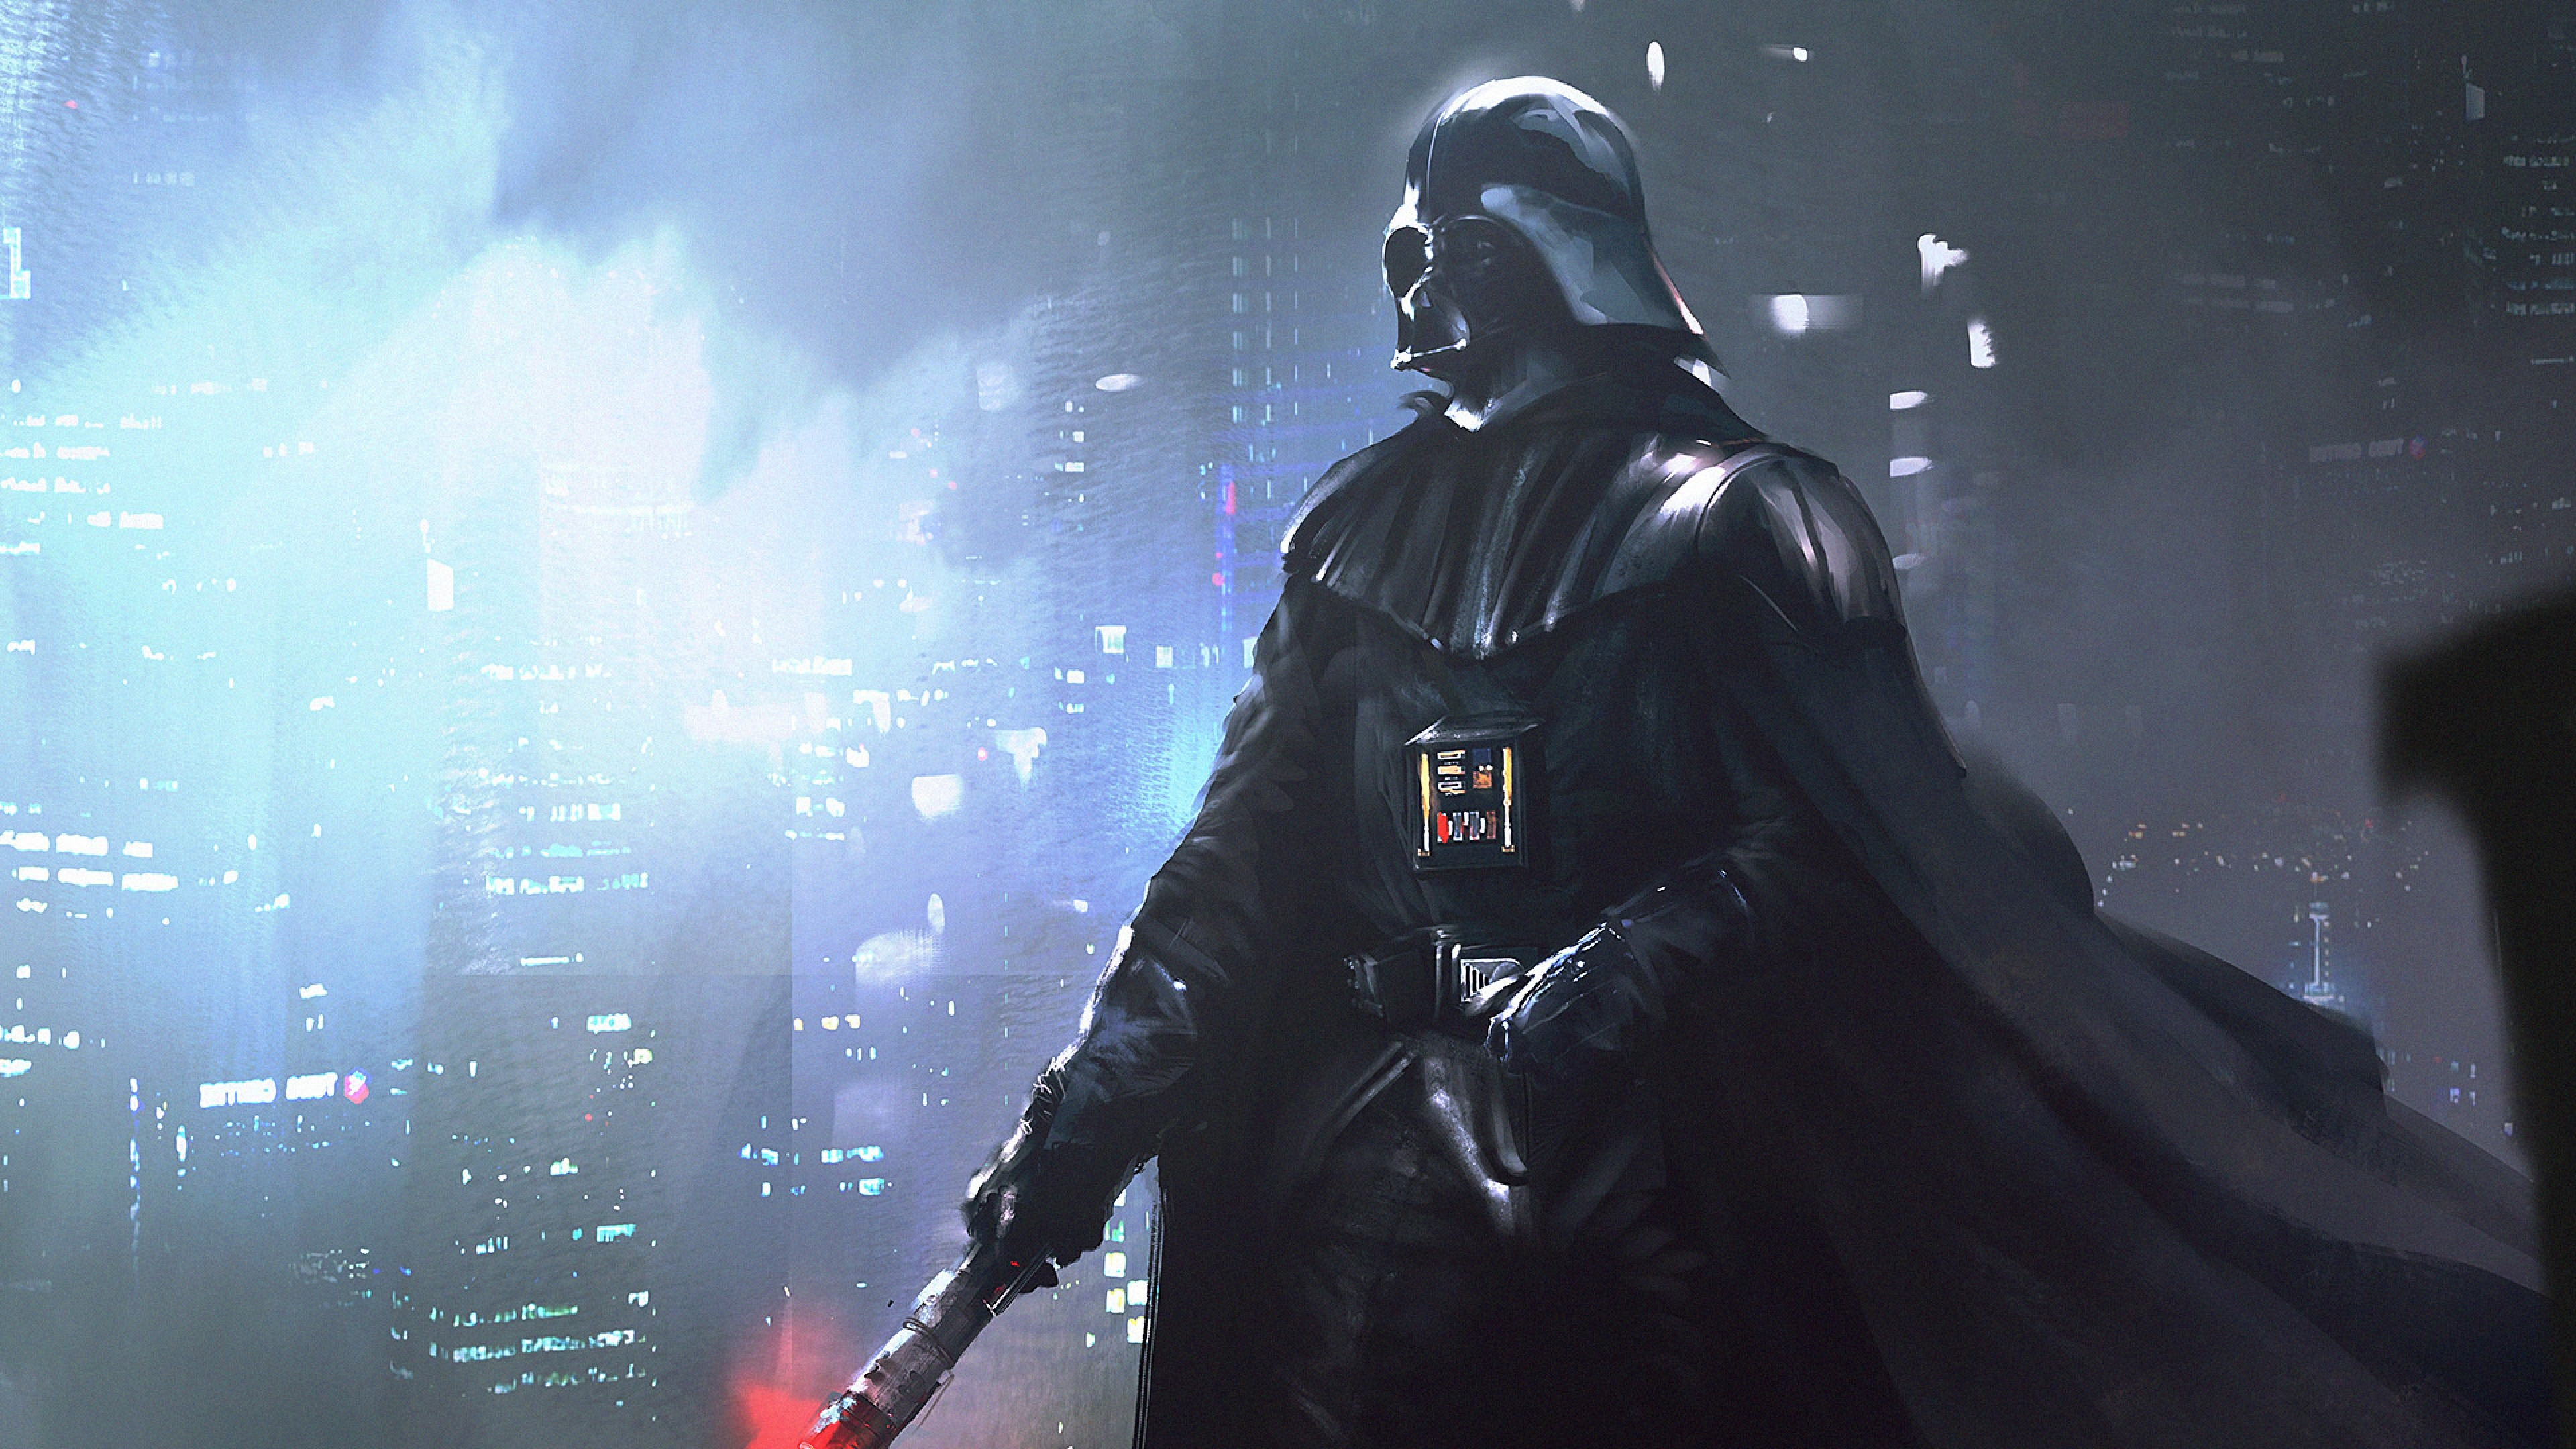 4k Ultra Hd Star Wars Wallpapers Hd Desktop Backgrounds Star Wars Darth Vader 4k 3840x2160 Wallpaper Teahub Io